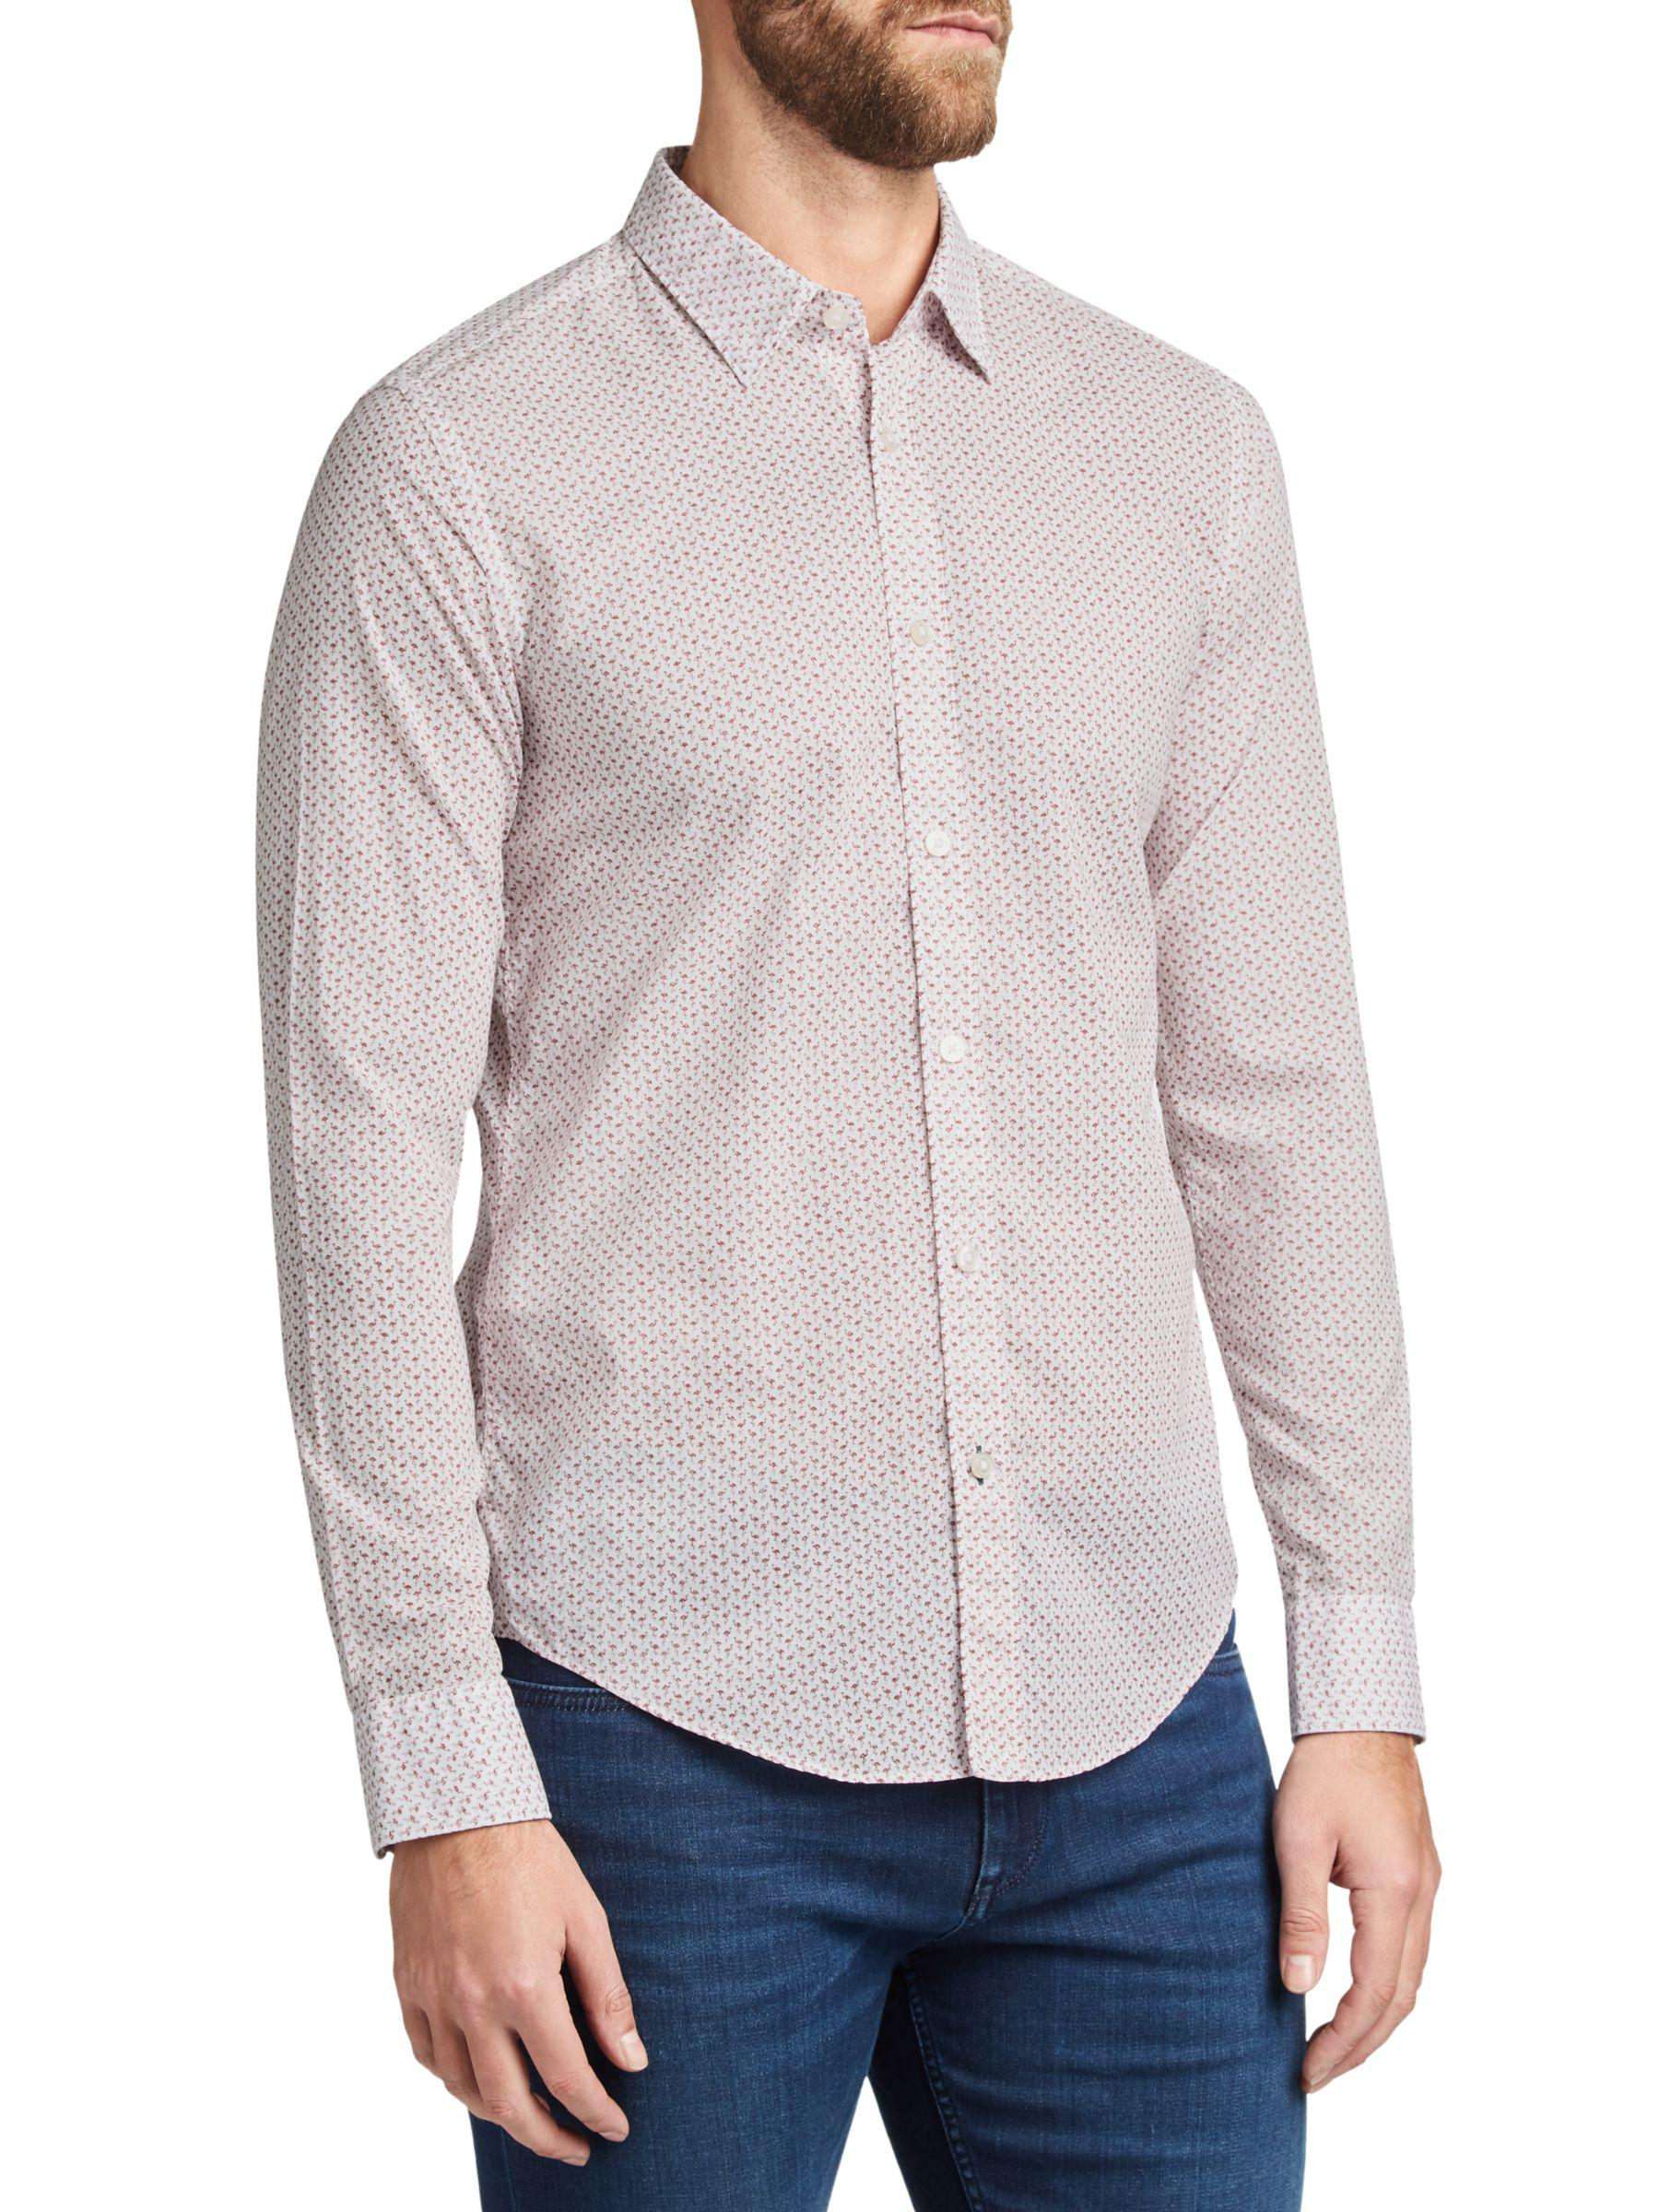 3e9c6ee3 BOSS Boss Ronni Abstract Print Slim Fit Shirt in Gray for Men - Lyst